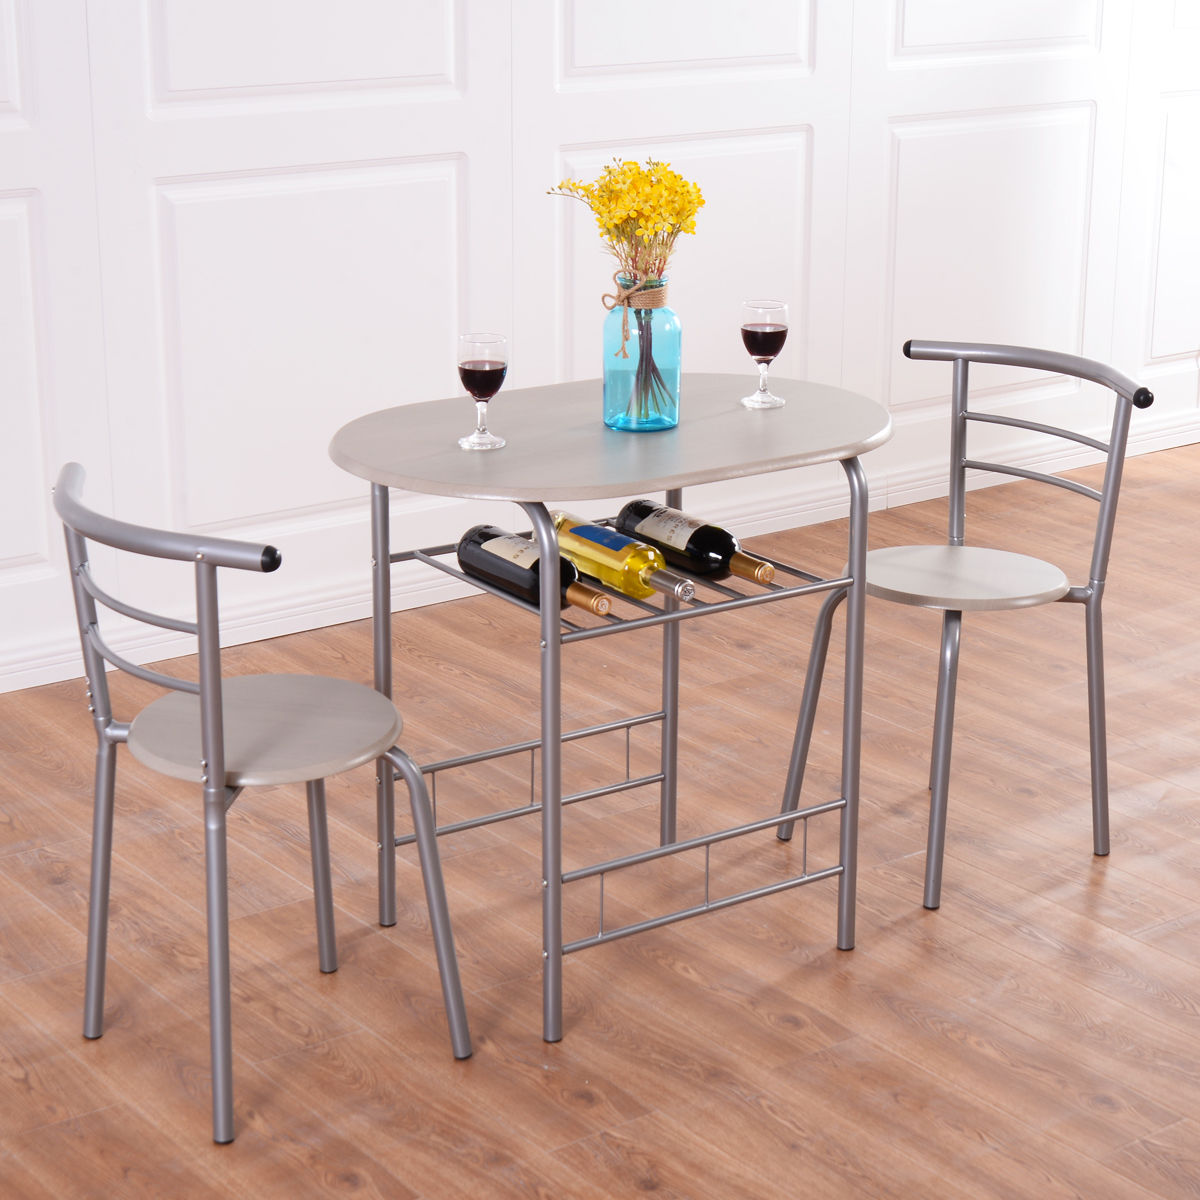 Costway 3 Piece Dining Set Table 2 Chairs Bistro Pub Home Kitchen Breakfast  Furniture   Walmart.com